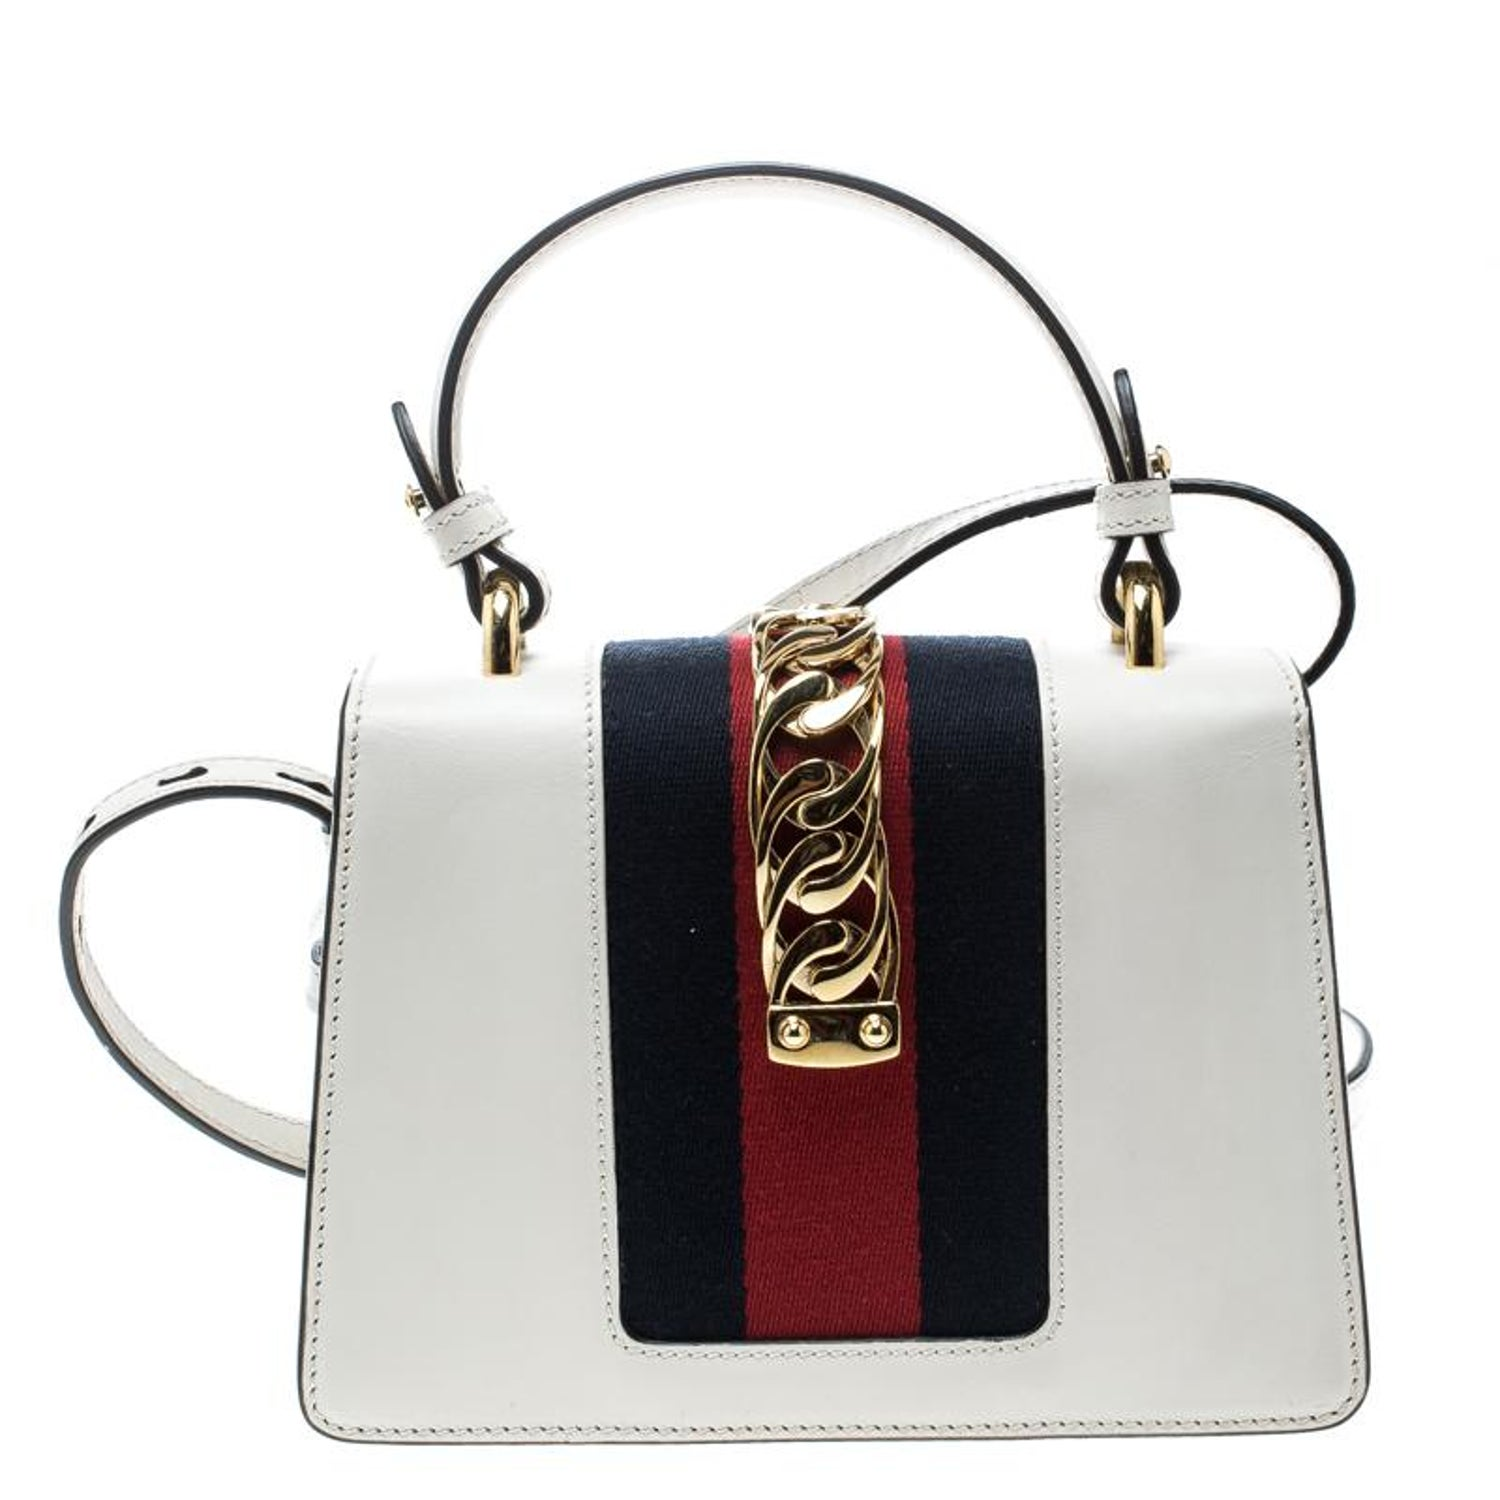 232796bd2ae Gucci Off White Leather Mini Sylvie Top Handle Bag For Sale at 1stdibs